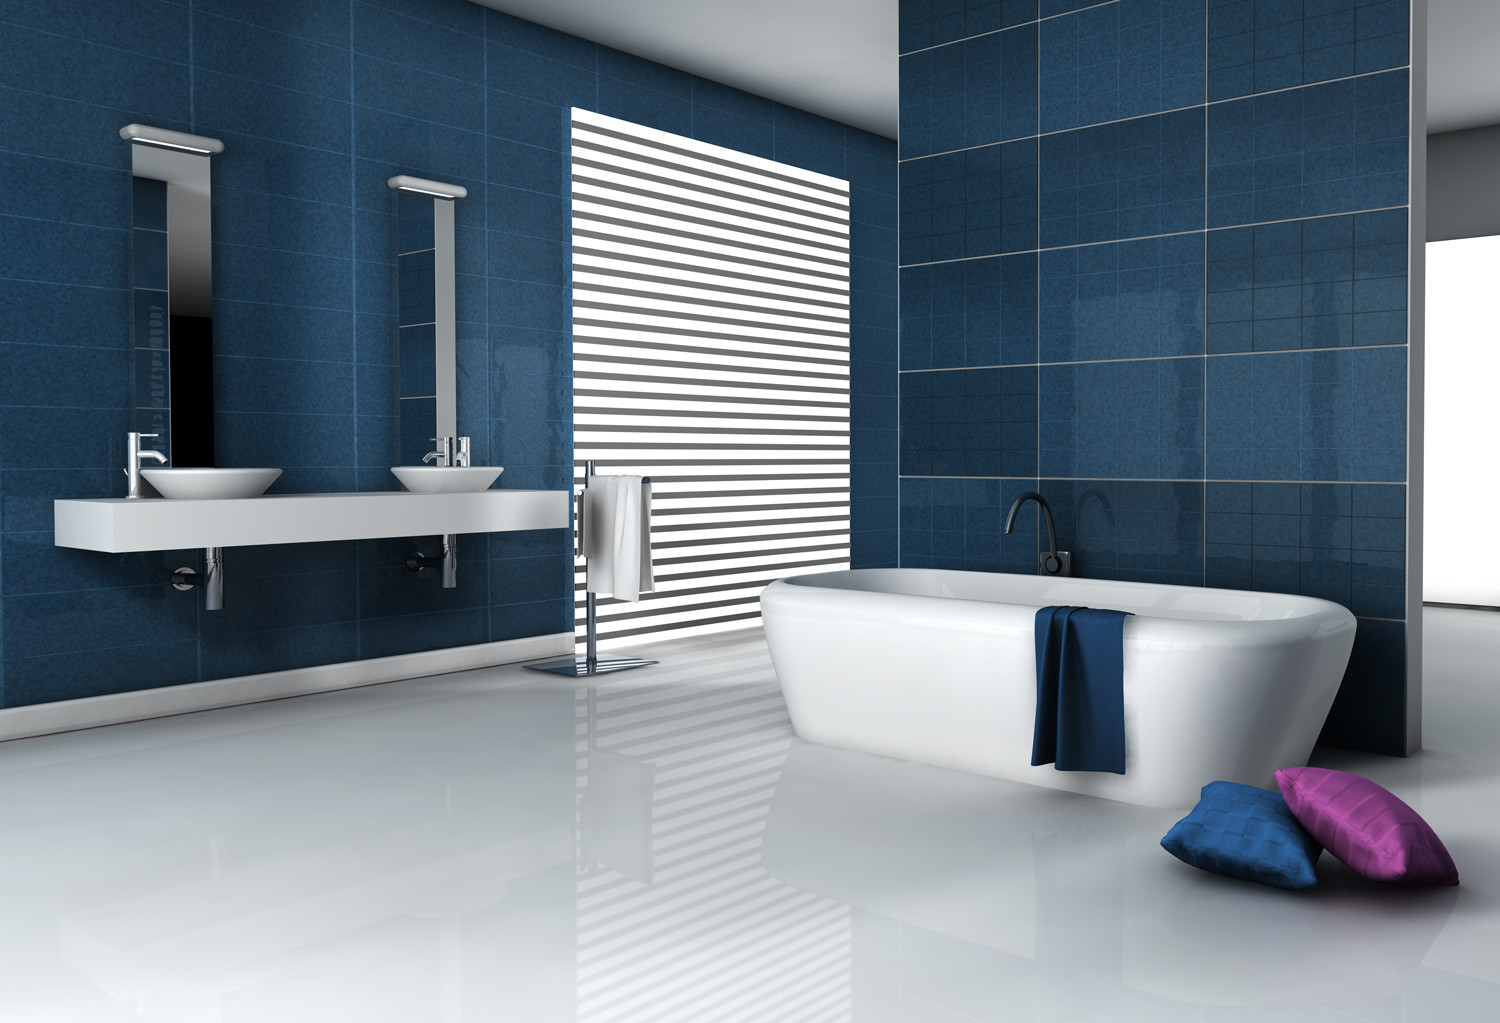 Top 10 Inspiring Bathroom Tile Trends For 2020 Westside Tile Stone